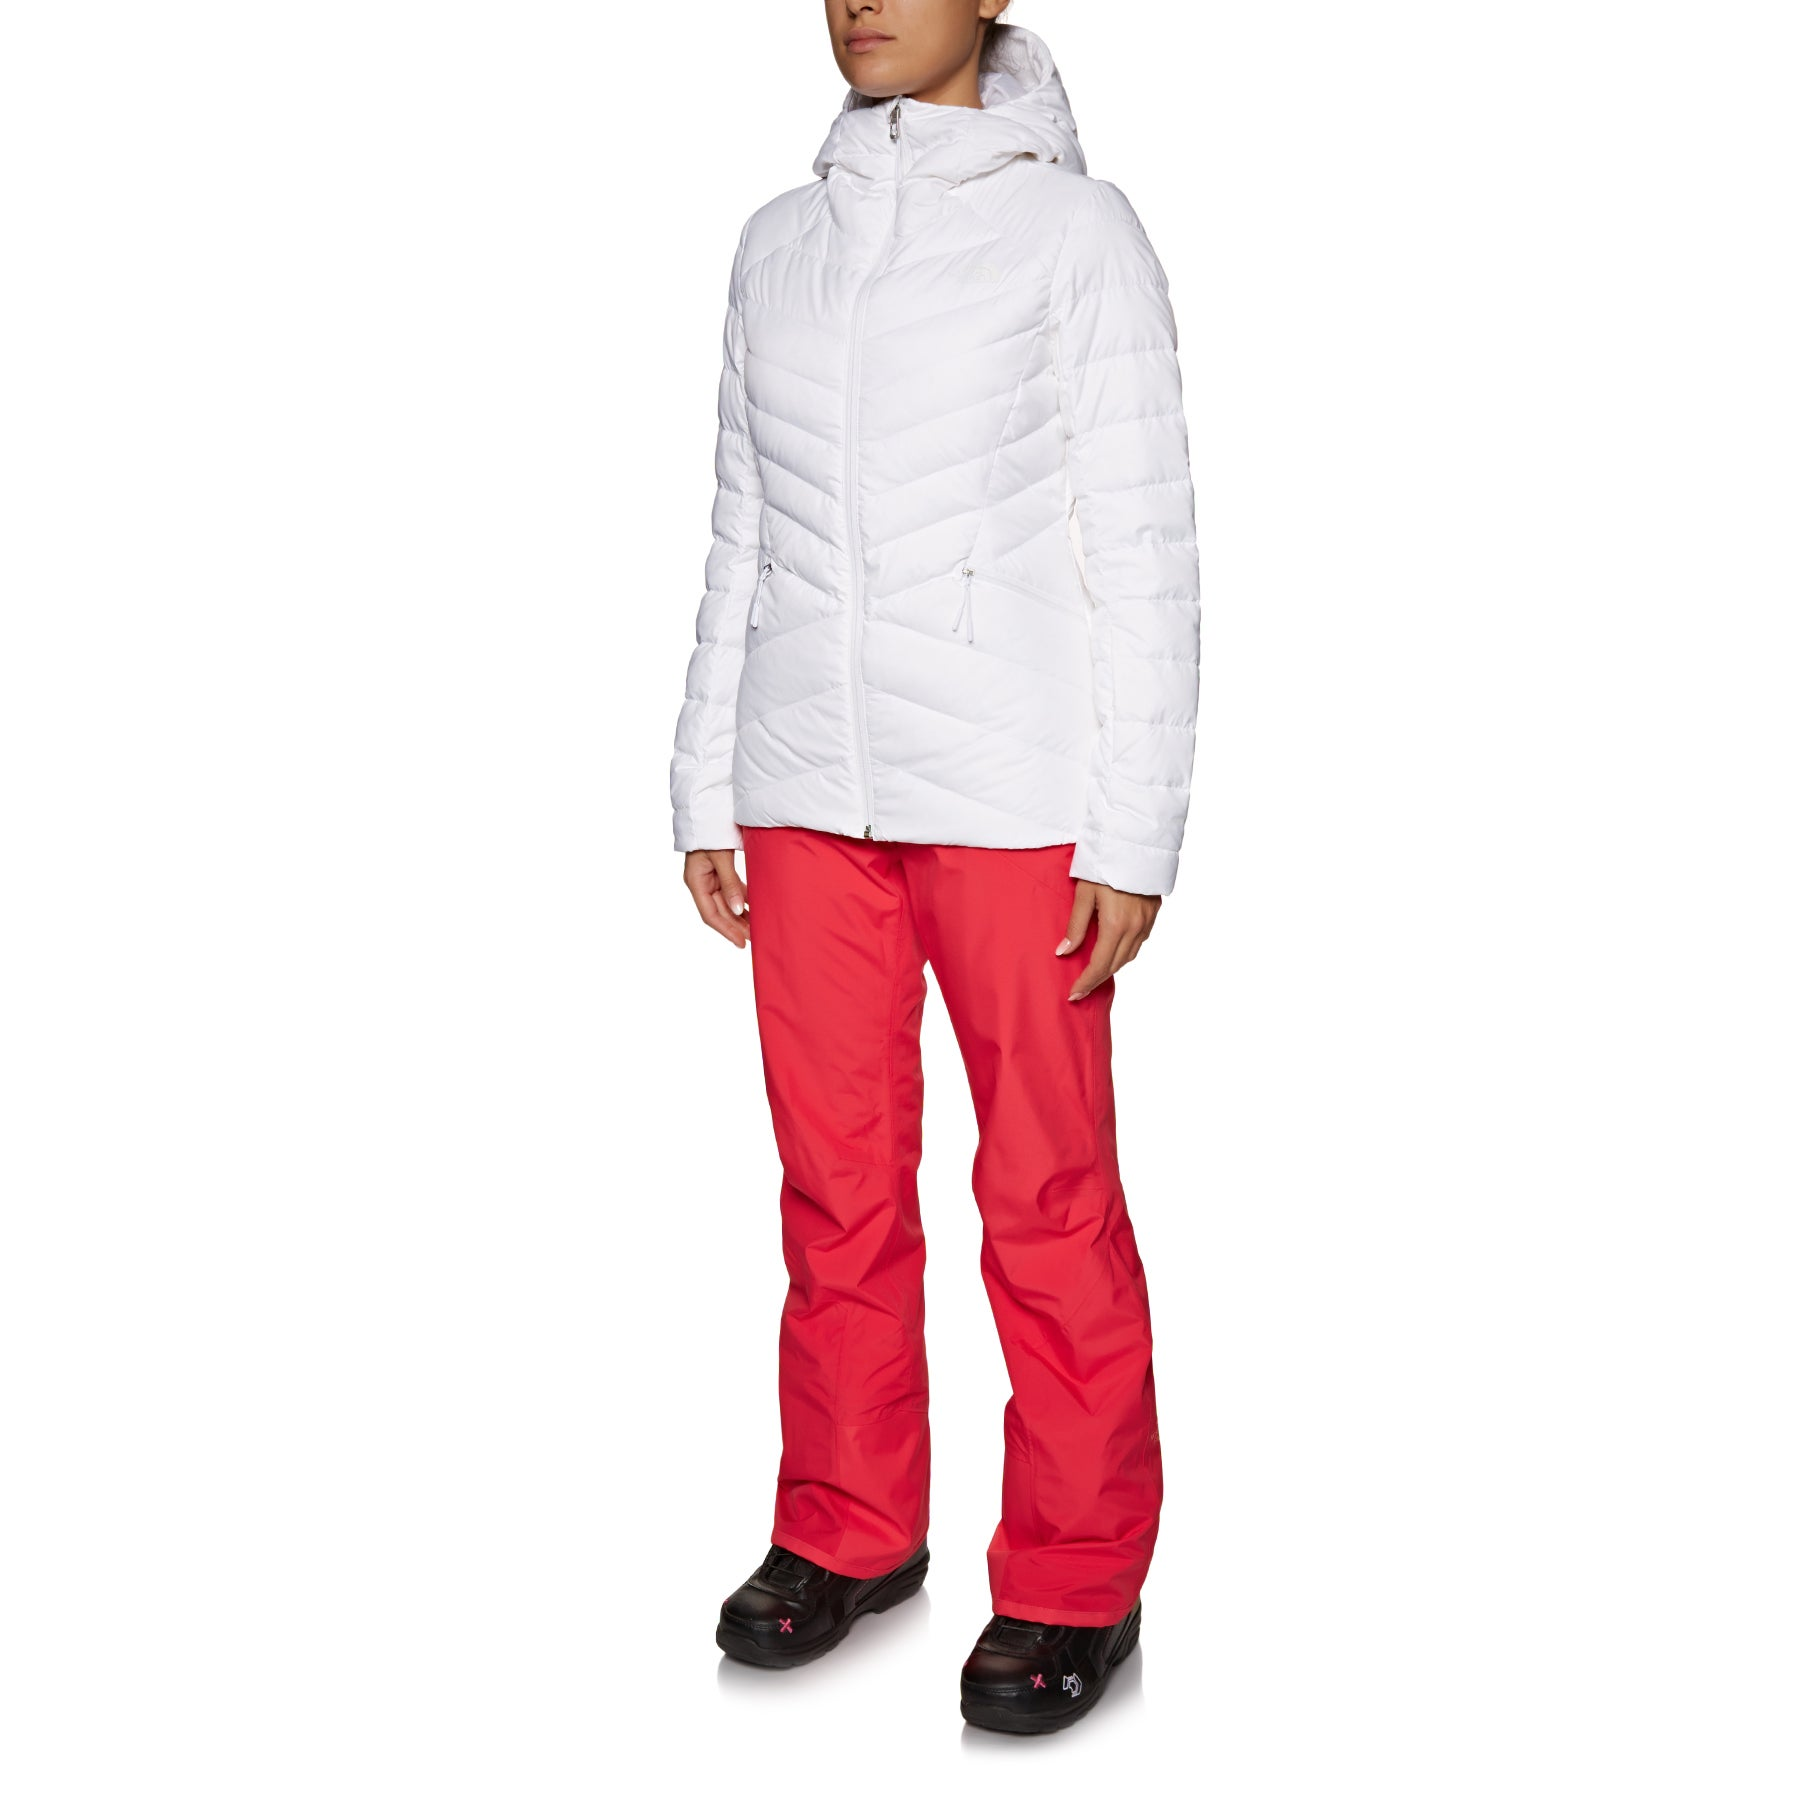 ddadecd494b17 North Face Moonlight Down Womens Snow Jacket available from Surfdome